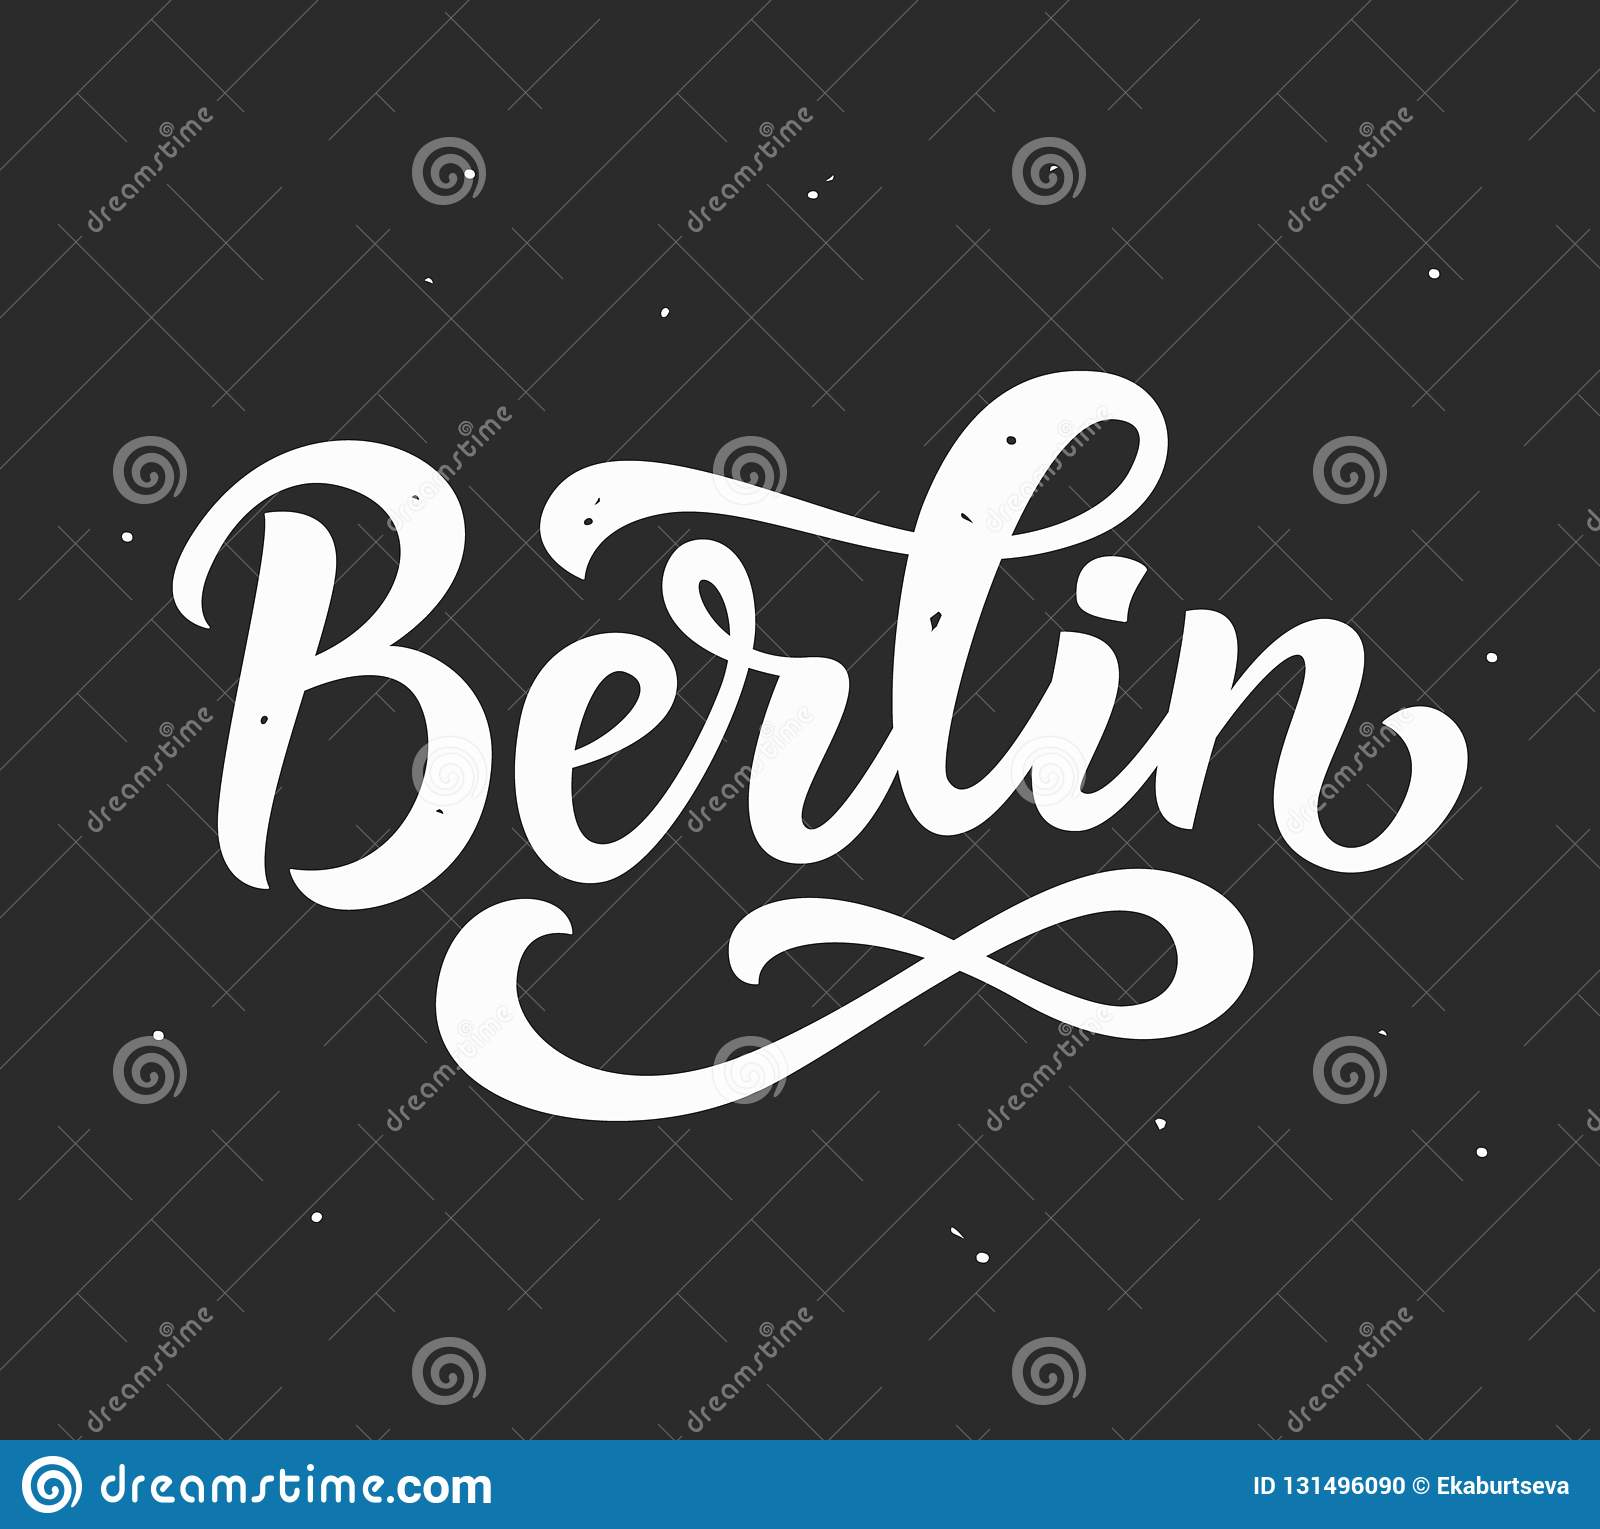 Berlin hand written lettering ink modern calligraphy modern grunge sticker trendy print typography card poster design vector illustration